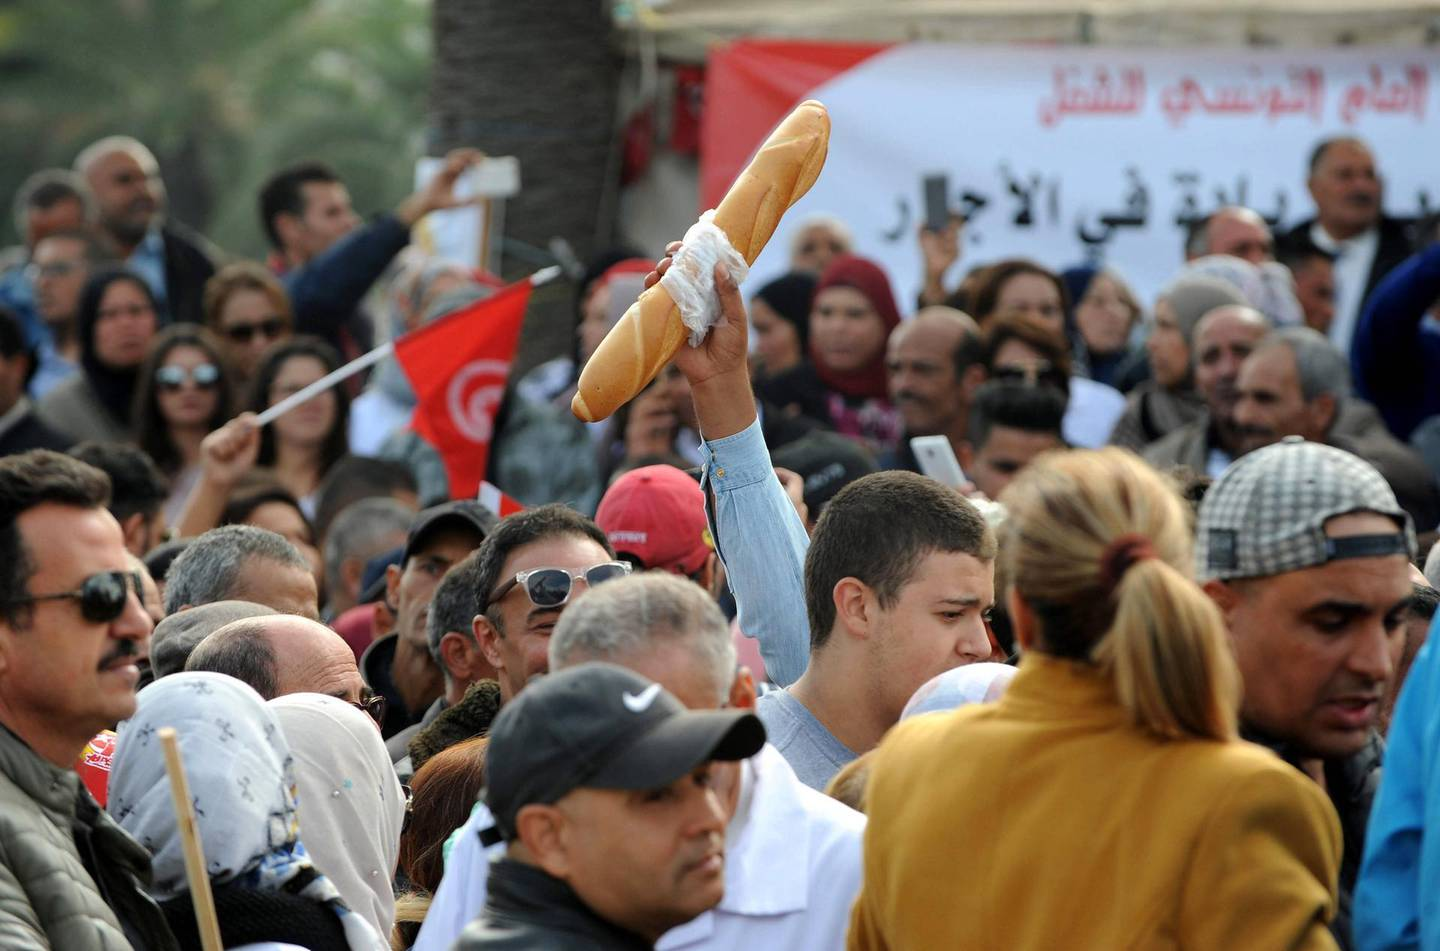 epa07183168 People protest during a general strike in Tunis, Tunisia, 22 November 2018. Some 670 thousand civil servants went on strike on 22 November 2018 after the Tunisian General Labor Union (UGTT) and the Tunisia government failed to reach an agreement to increase the salaries by the government. Protesters said that the loan by the International Monetary Fund (IMF) to Tunisia was one of the main factors of the government refusal. Tunisia agreed in 2016 a 2.8 billion US dollars loan from the IMF. The general strike included all public sectors subjected to the civil service law, with minimum level of service guaranteed in vital sectors like emergency services.  EPA/STR